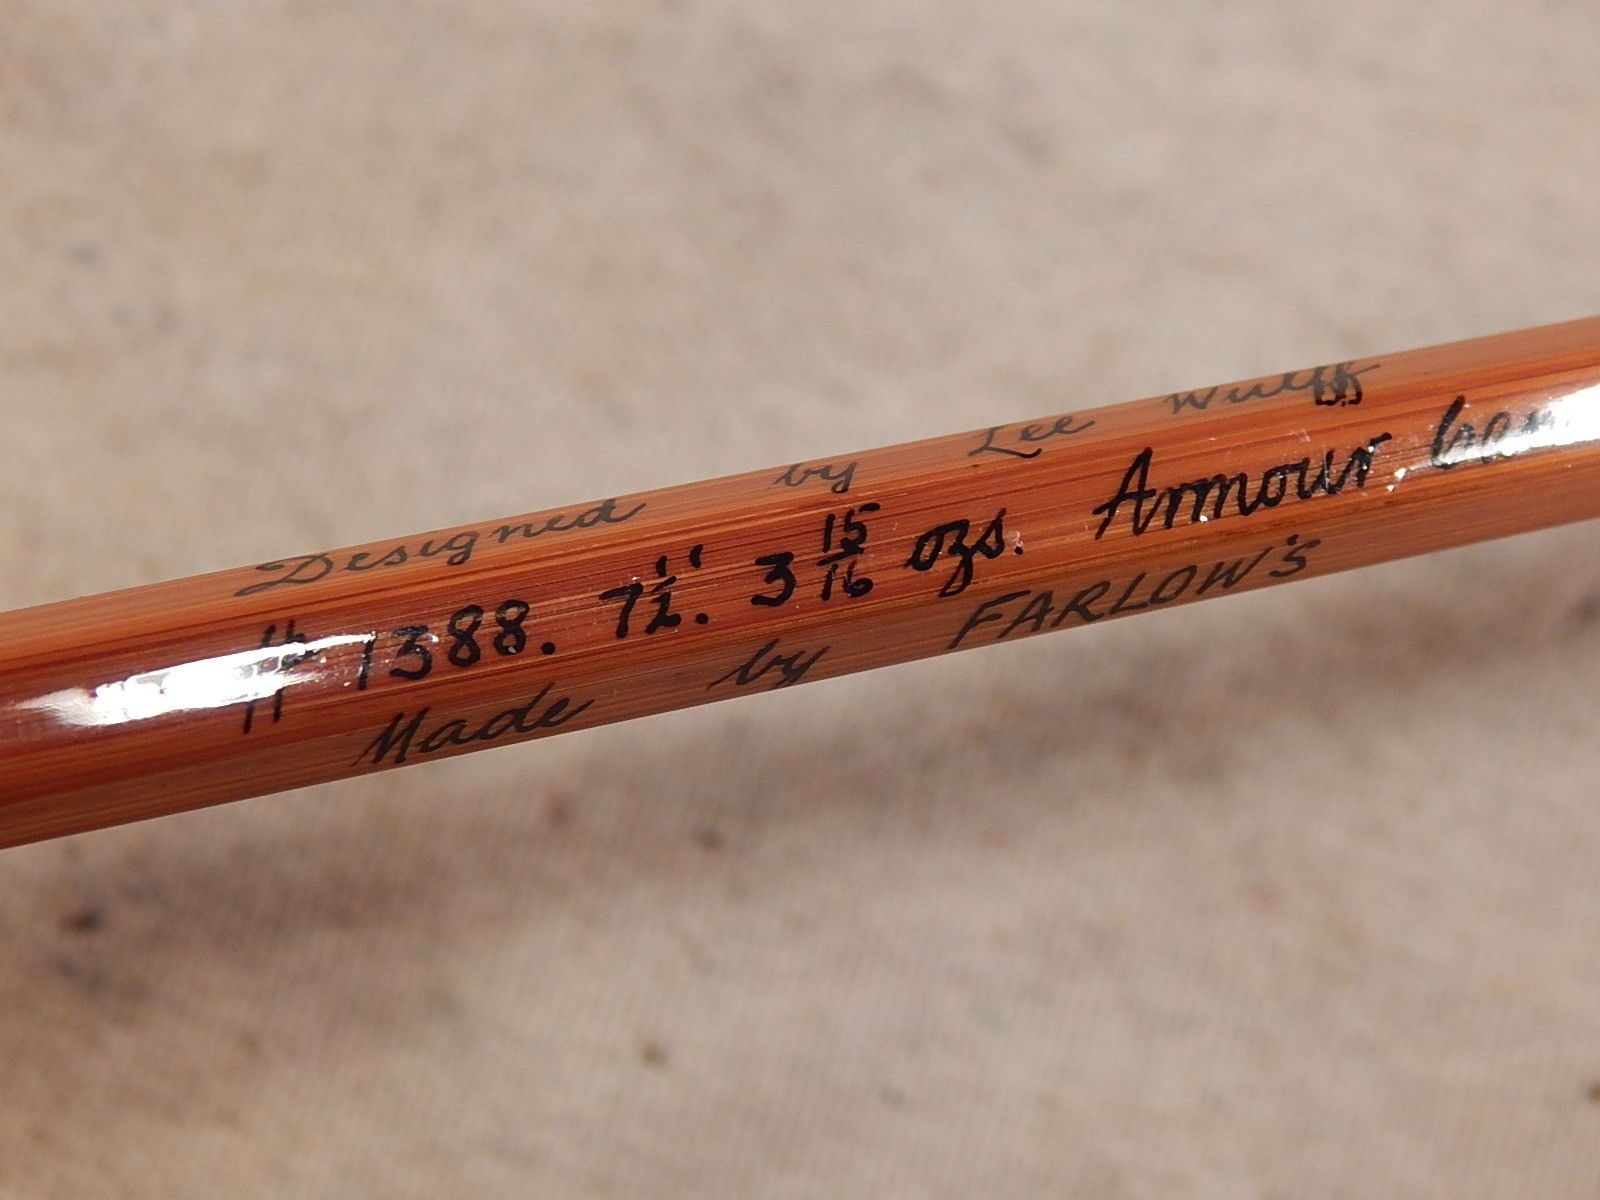 Farlows Of Scotland Lee Wulff 7 6 5 6 Weight Bamboo 2 1 Impregnated Fly Rod Ebay Bamboo Fly Rod Fly Rods Rod